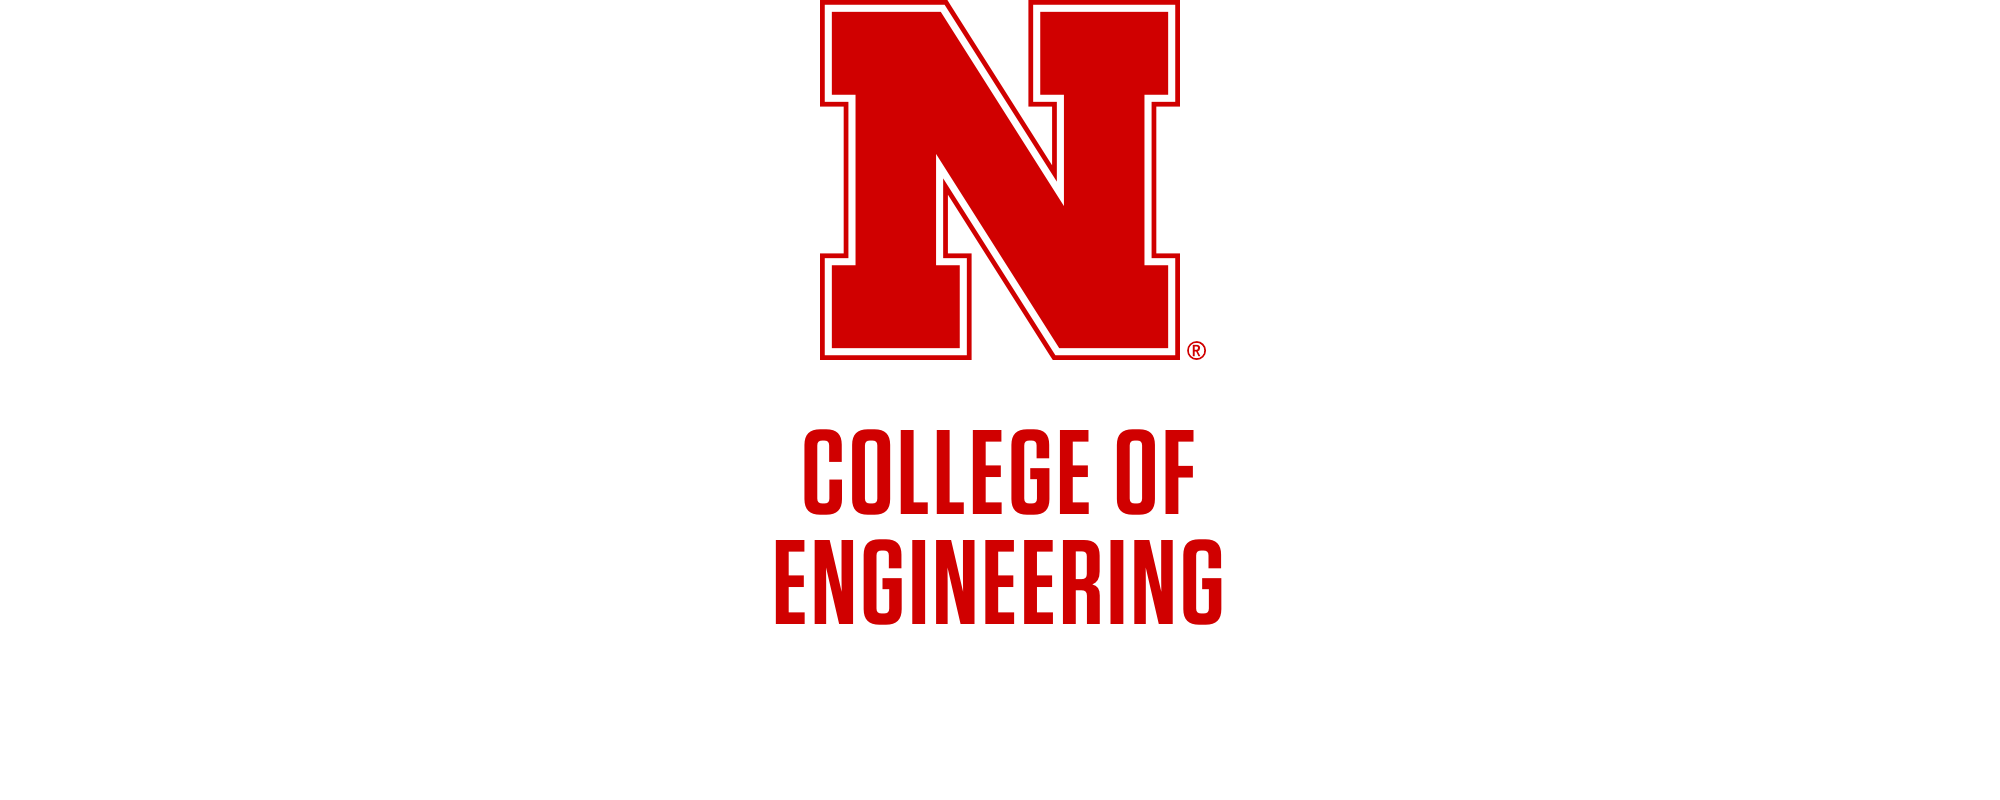 Red N over 2-line College of Engineering Word Mark